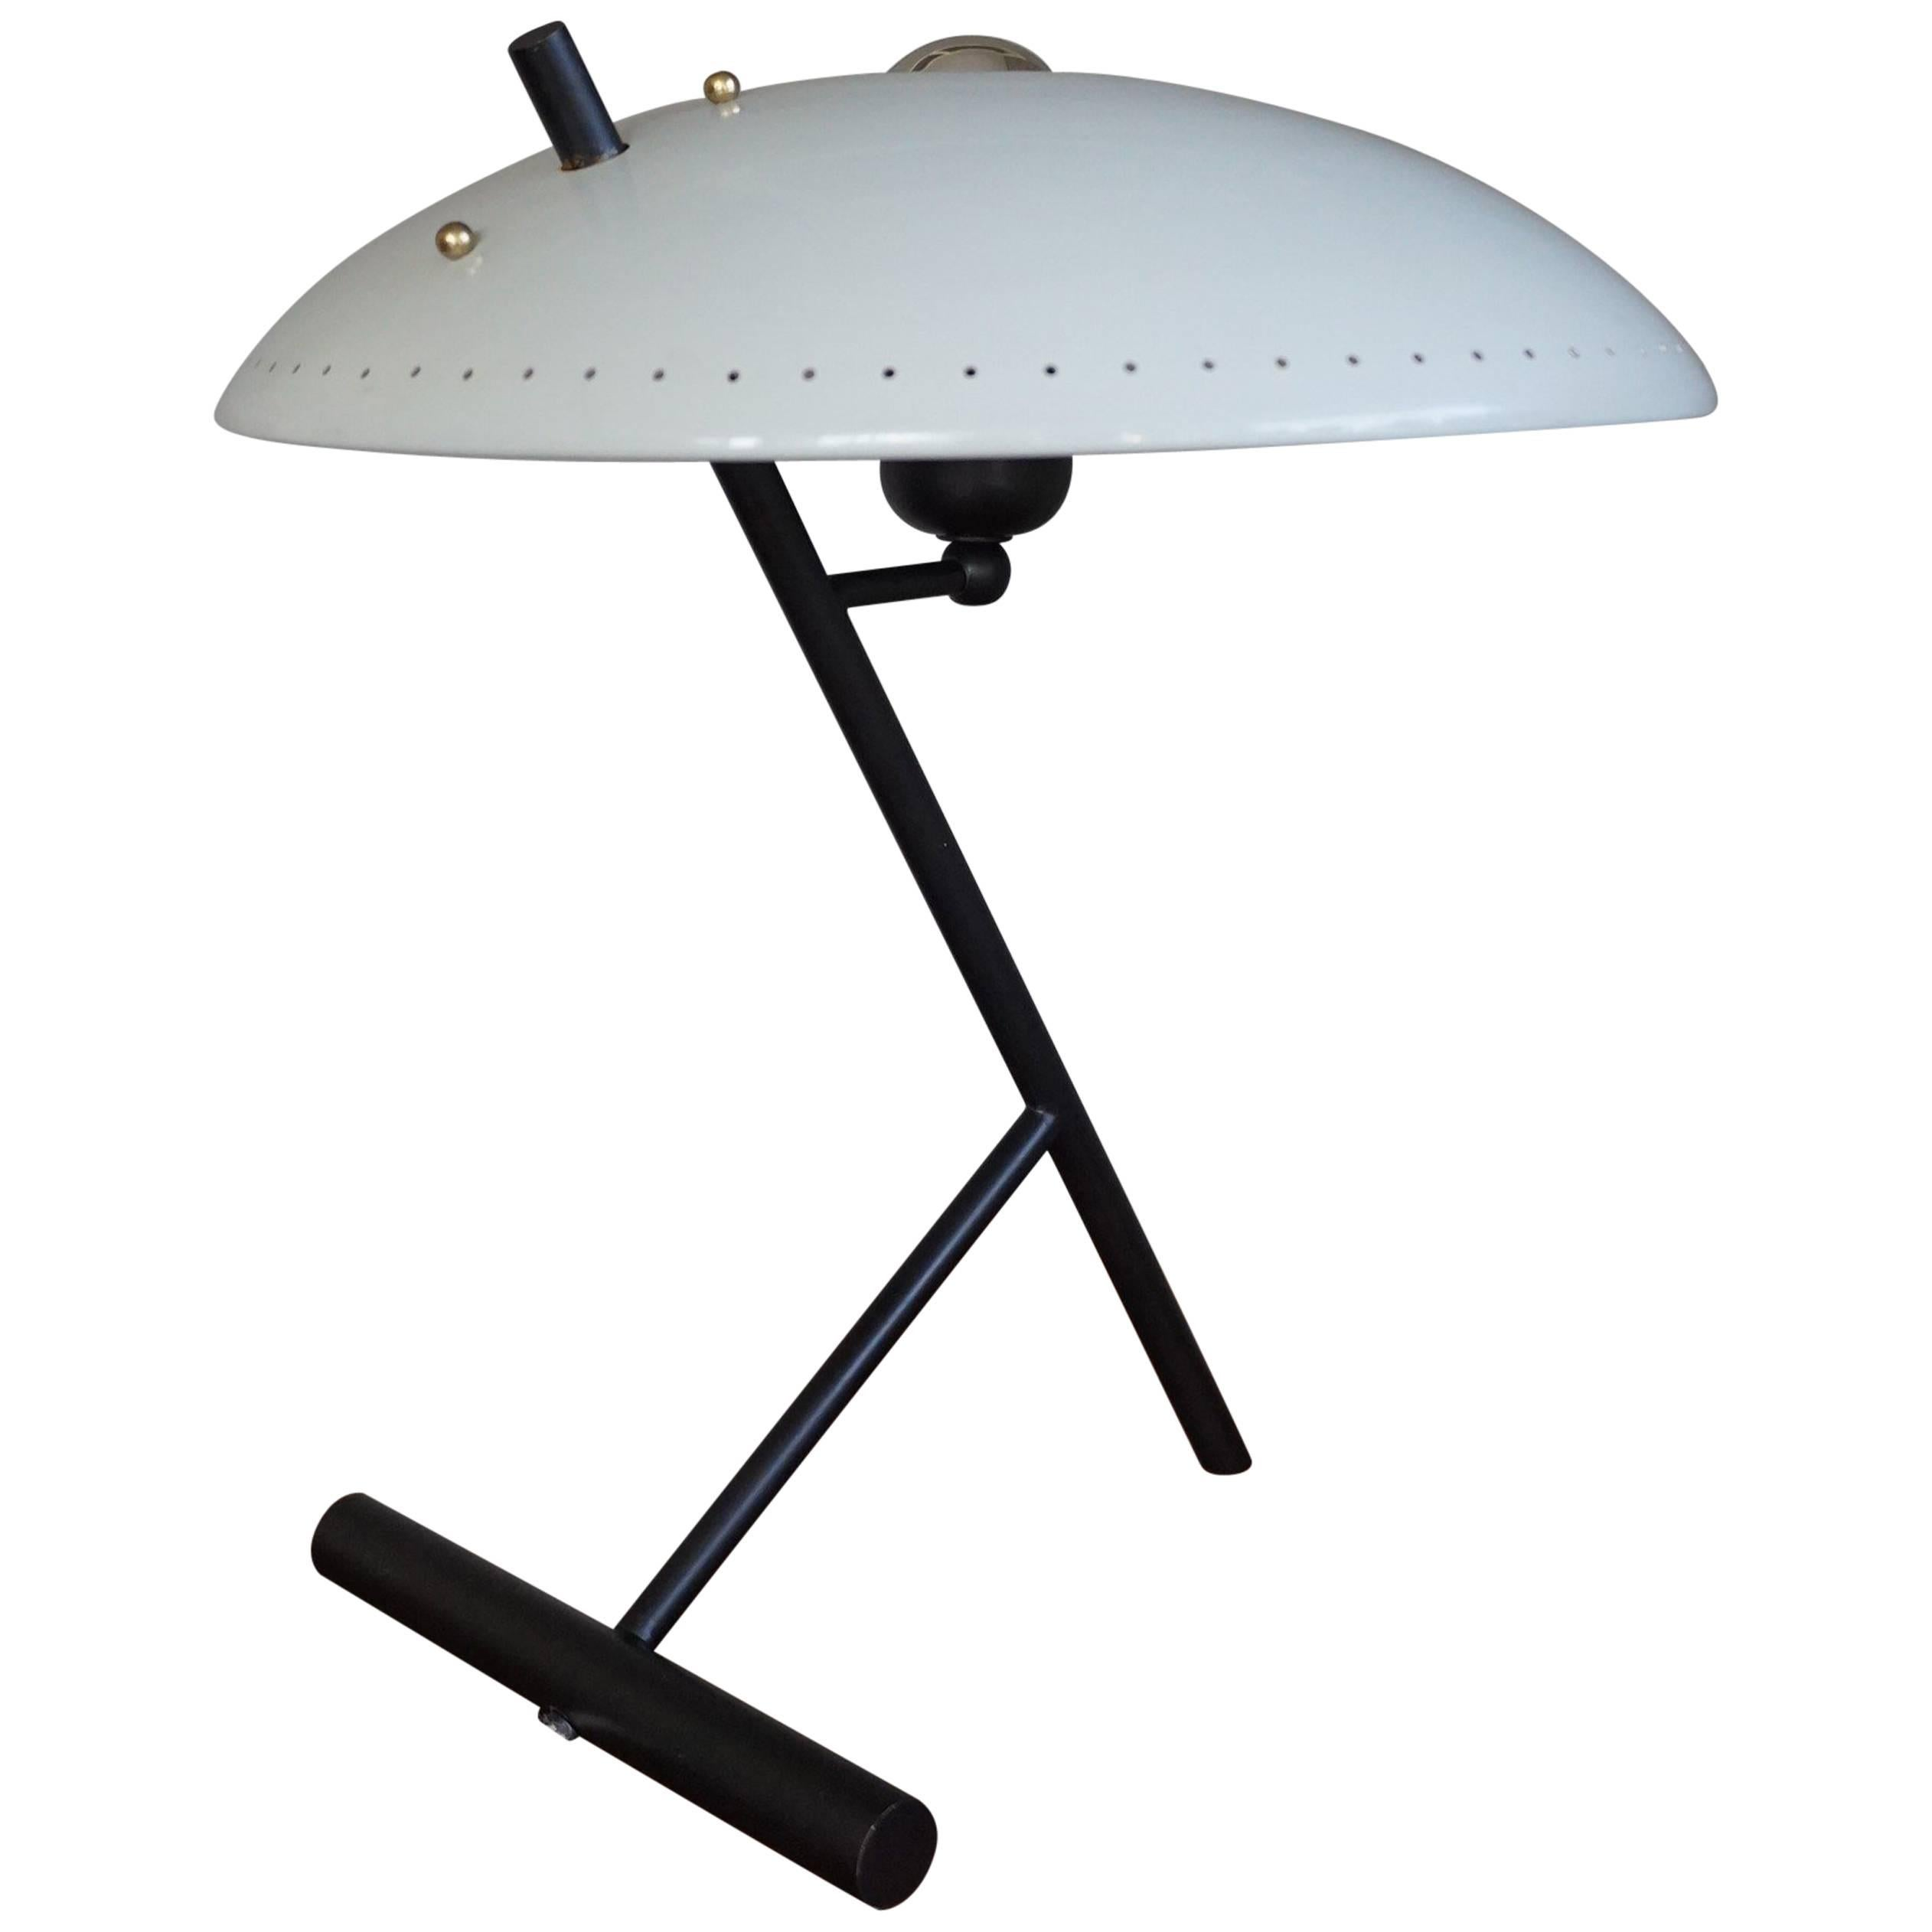 Louis Kalff Mid-century Modern Table or Desk Lamp with Black Base and Grey Shade